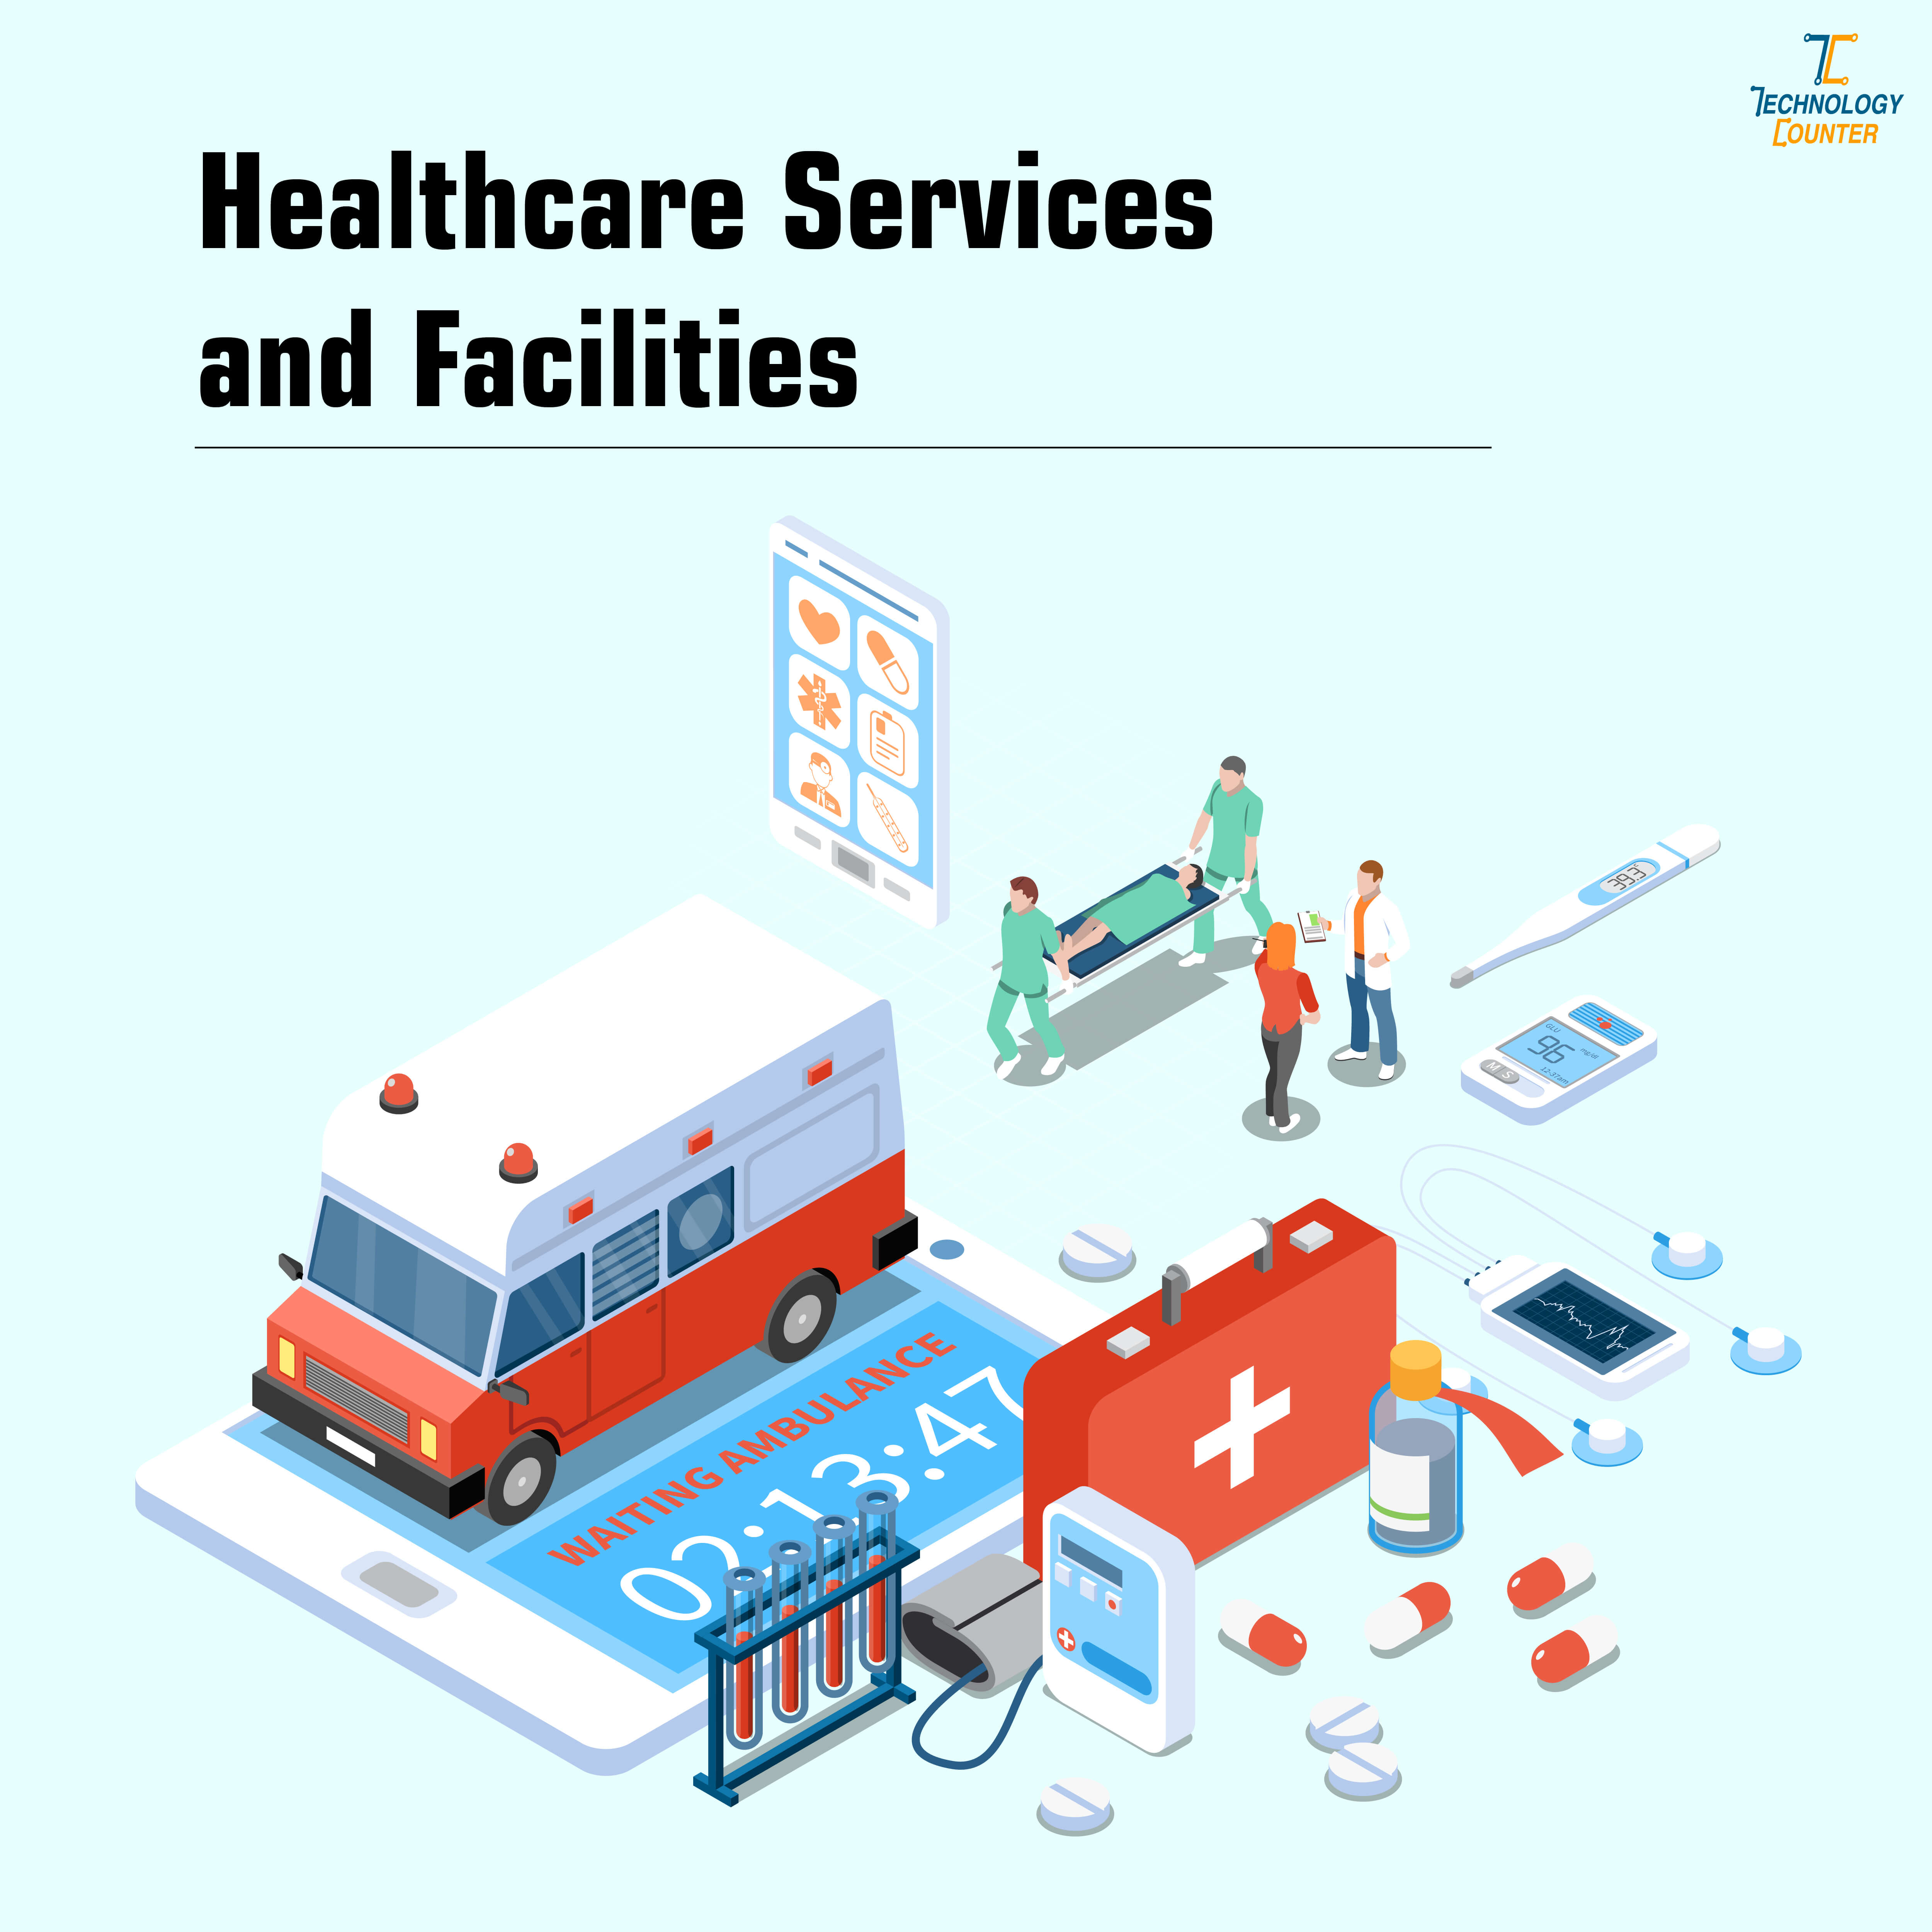 Healthcare Services and Facilities